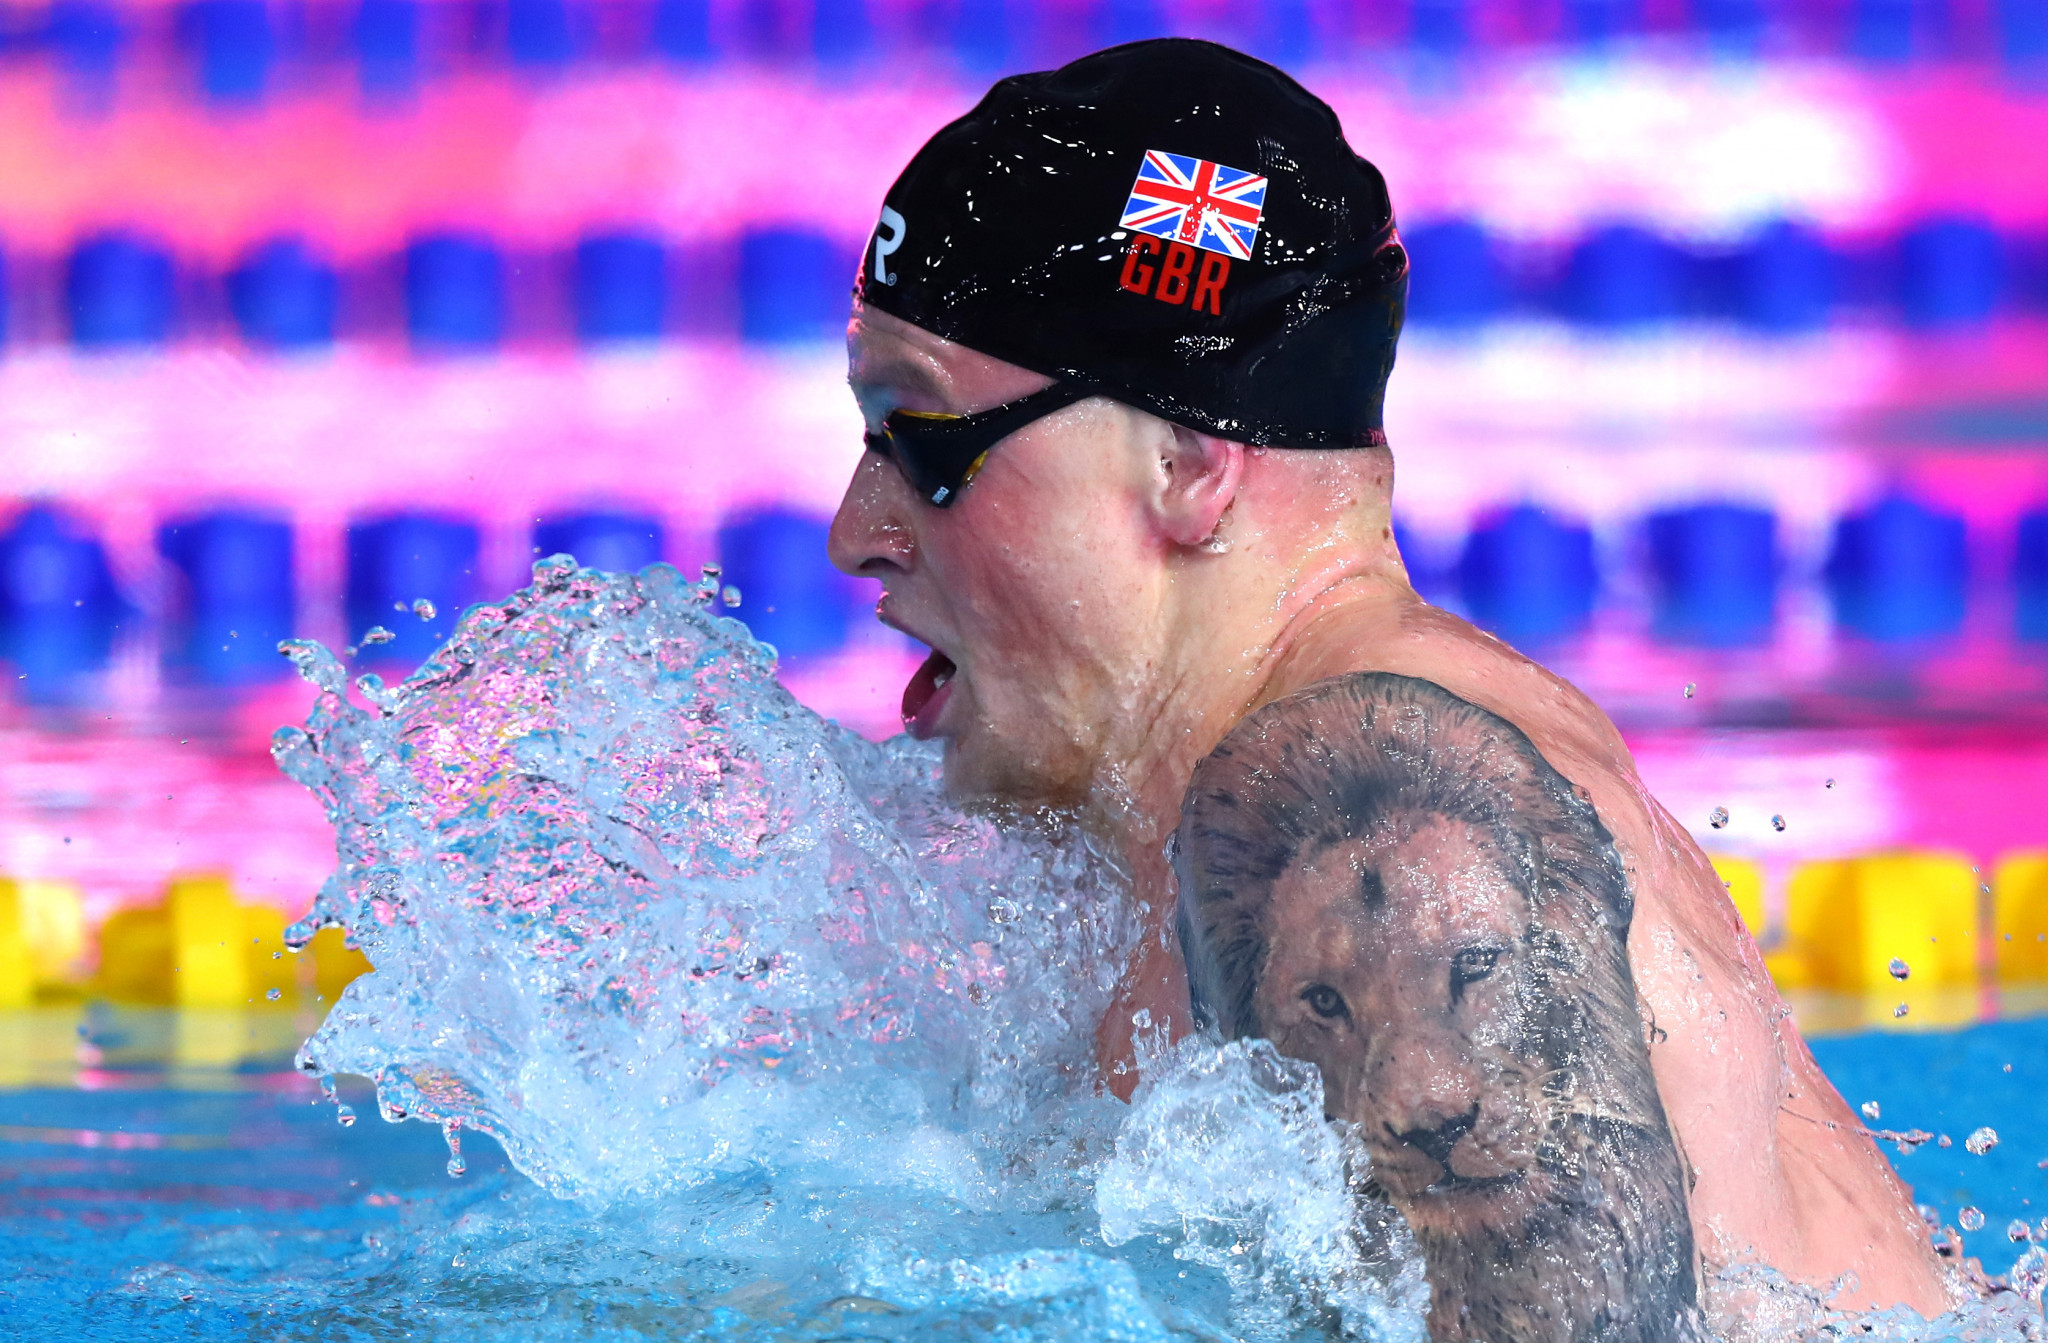 Olympic champion Adam Peaty cruised into the men's 100m breaststroke final ©Getty Images